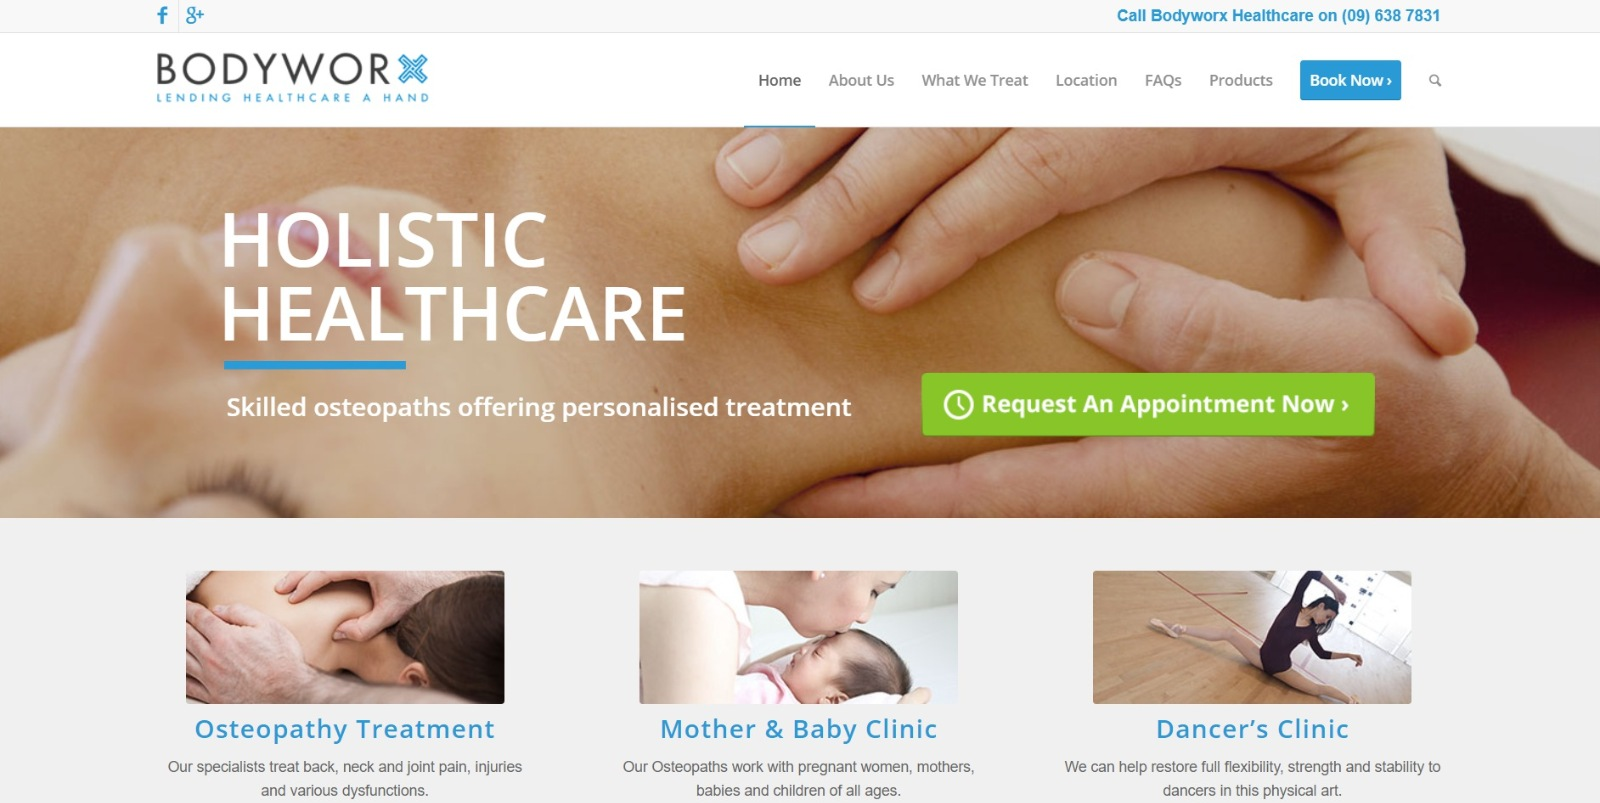 Bodyworx health care